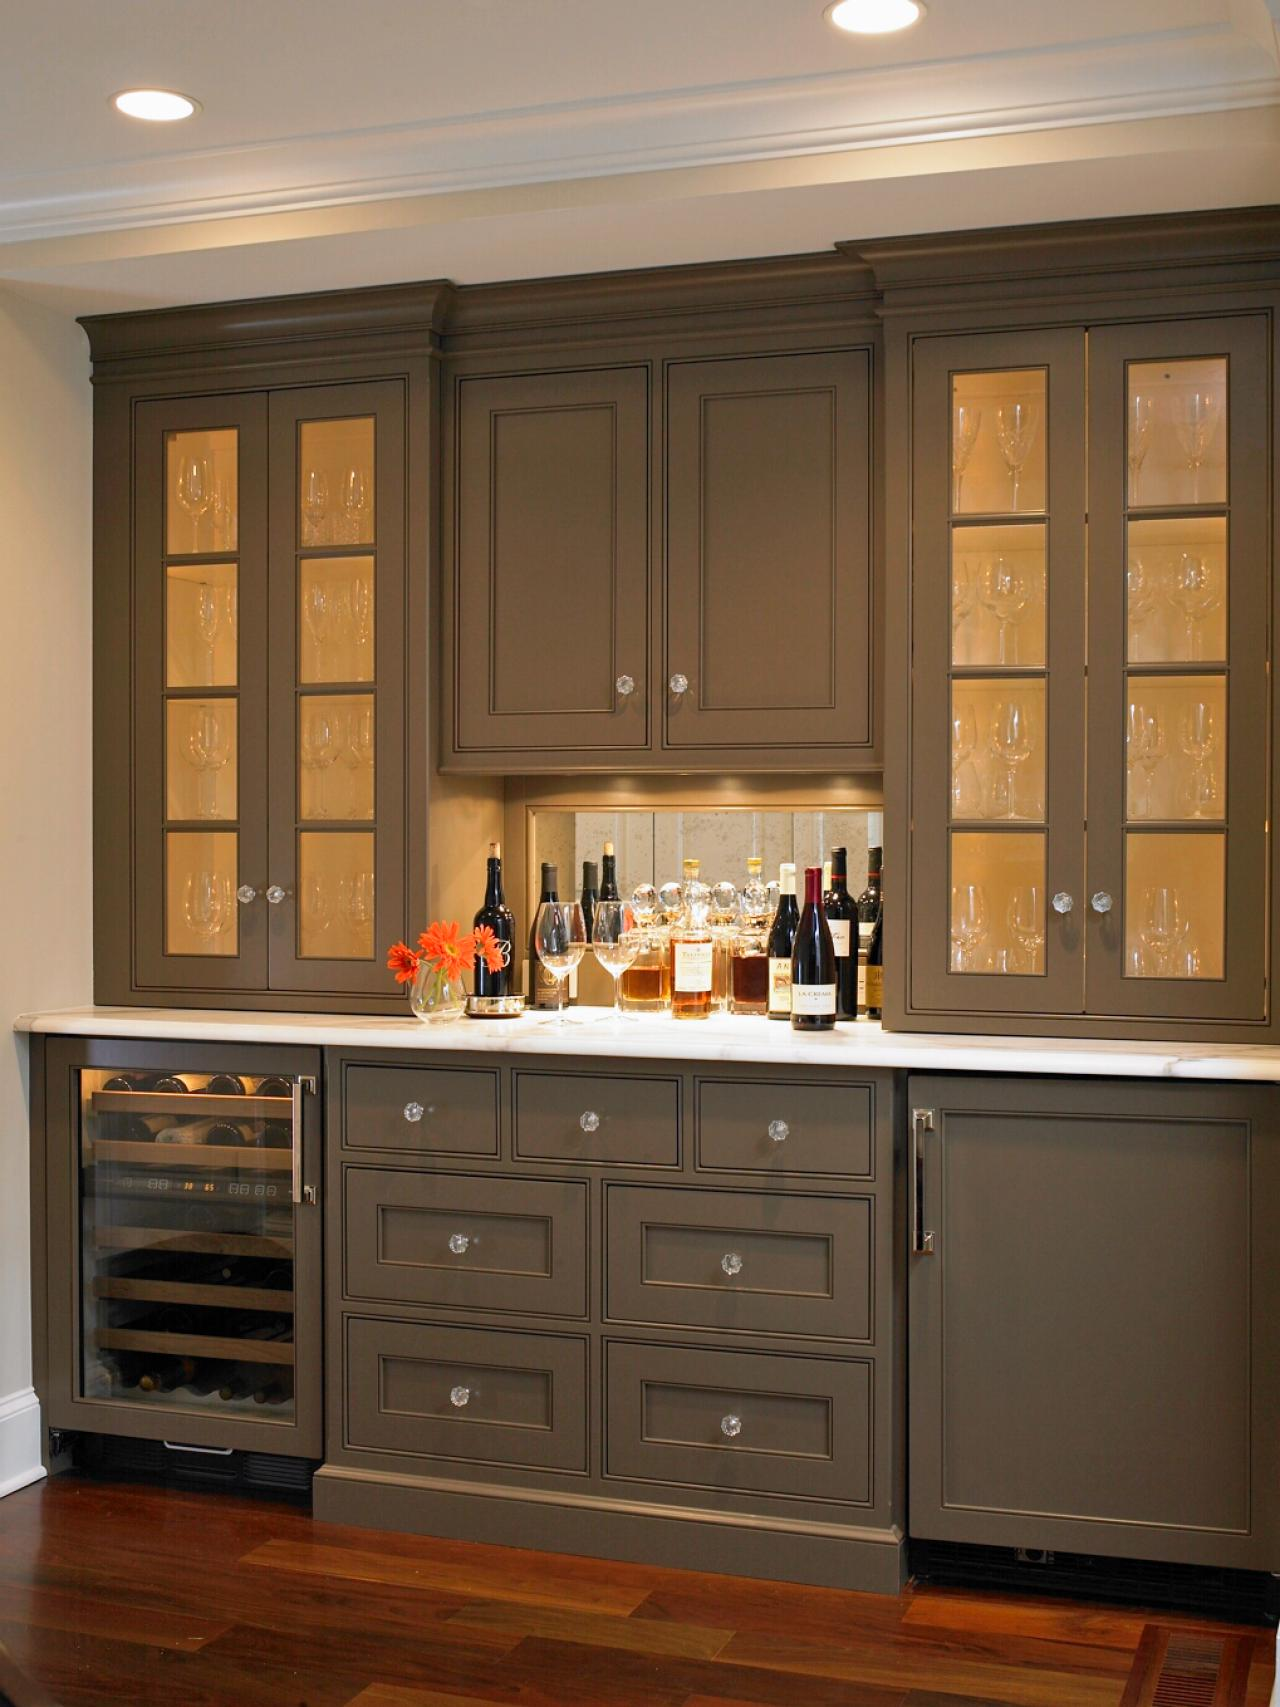 Colored Kitchen Cabinets refinishing kitchen cabinet ideas: pictures & tips from hgtv | hgtv